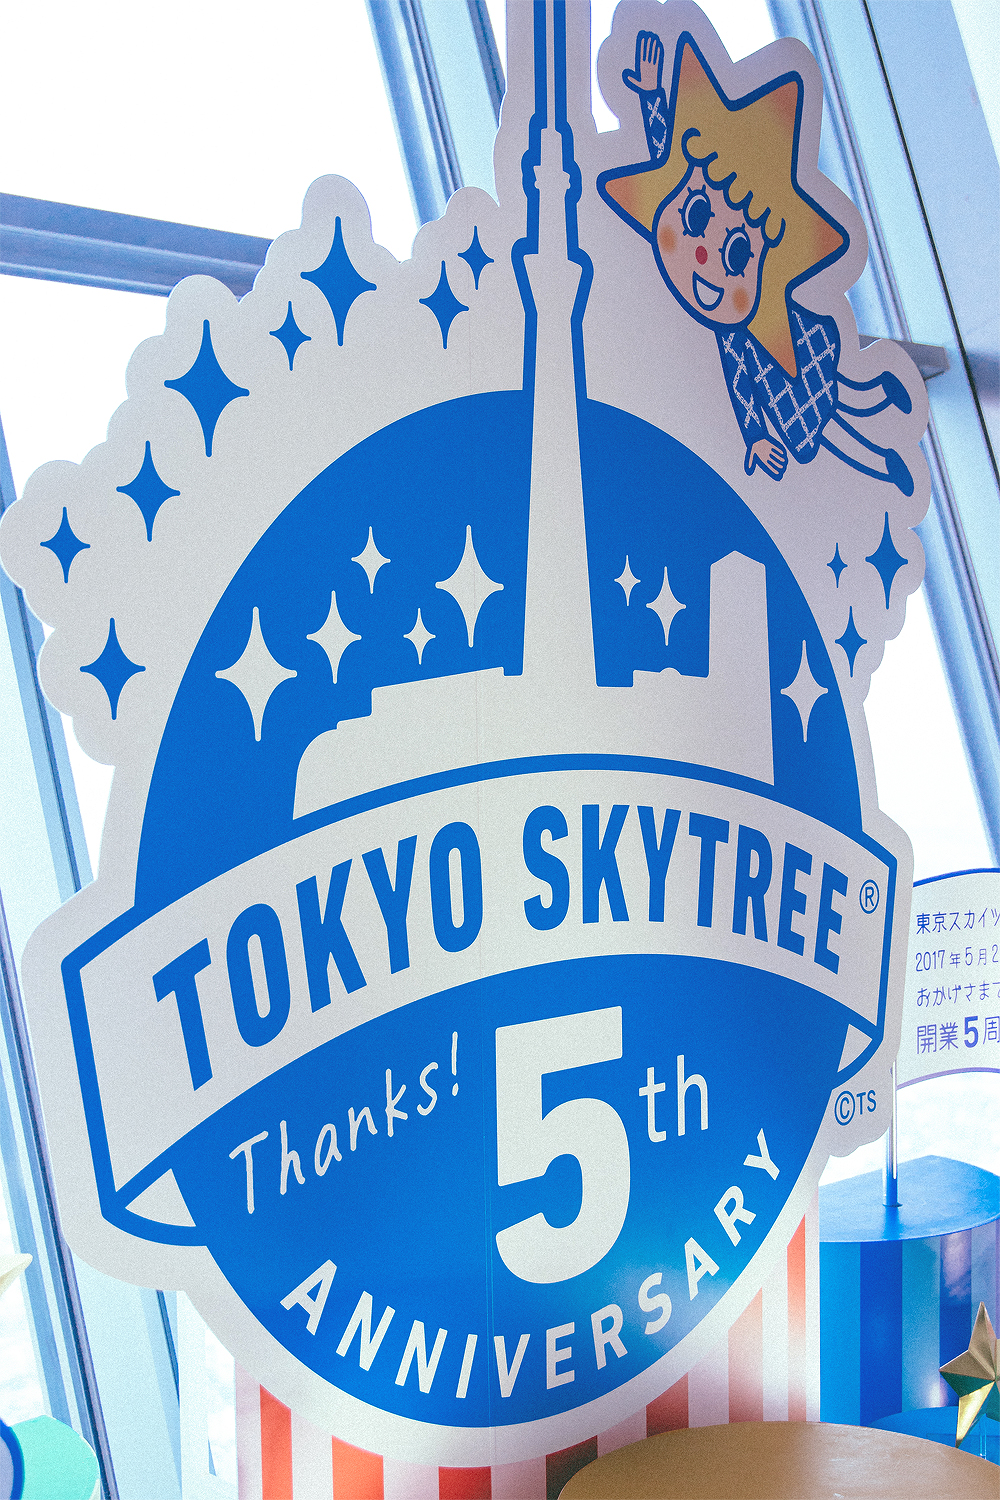 Coincidentally Tokyo SkyTree is celebrating their 5th Anniversary! As I mentioned before, everything has a mascot.